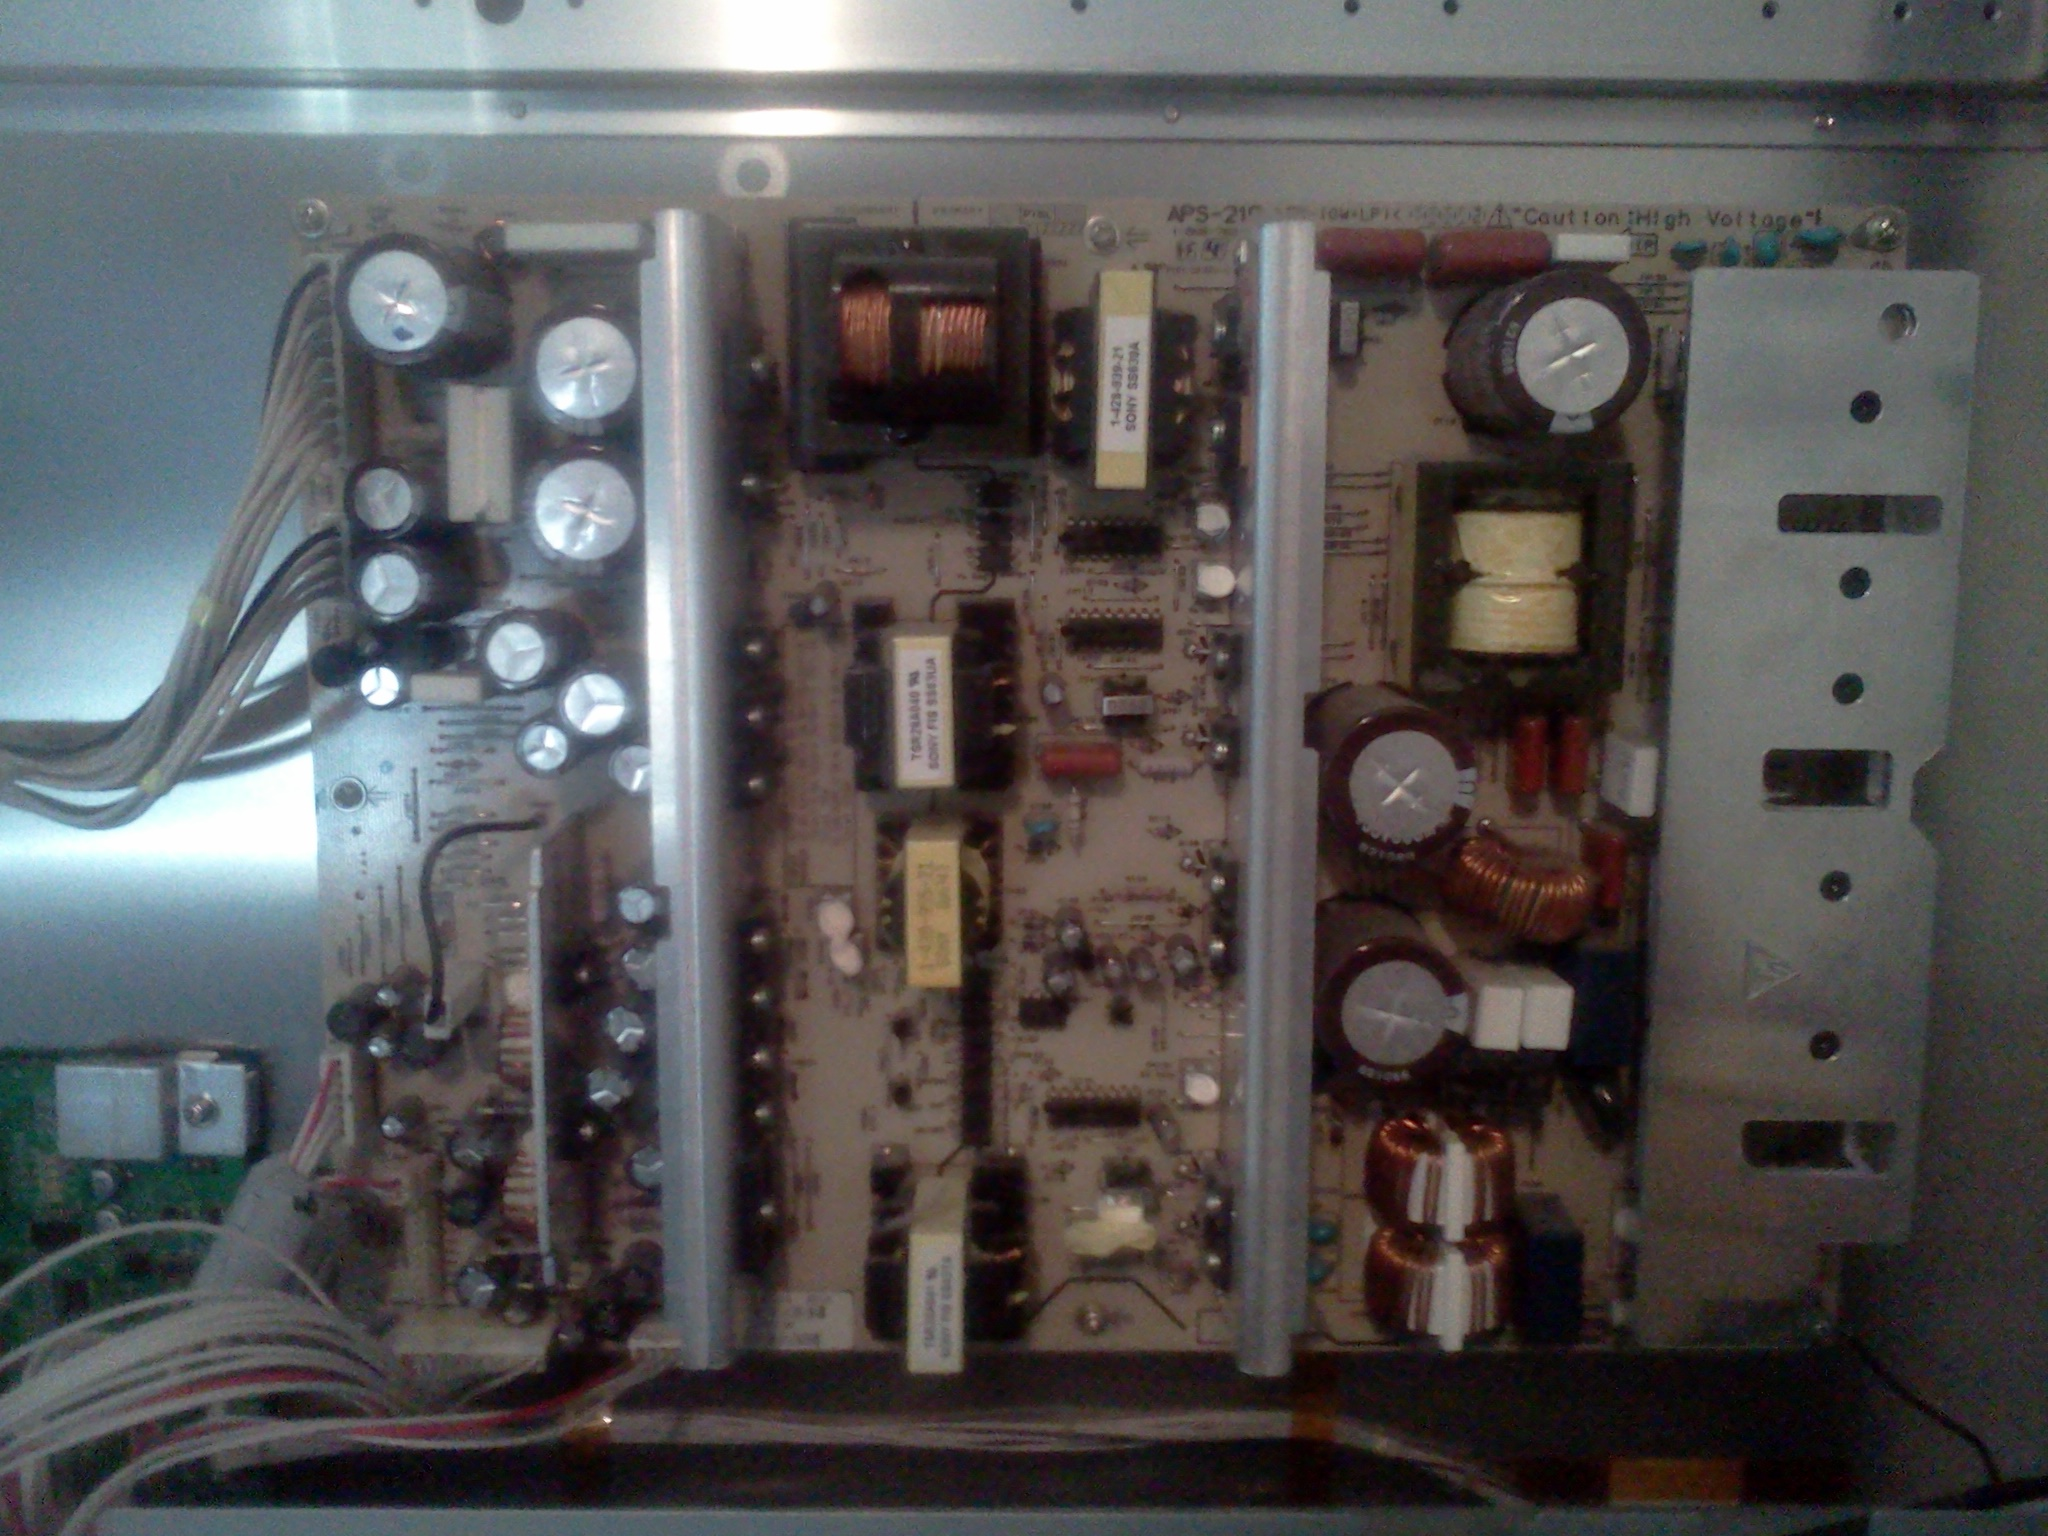 Toshiba 50hp66 Schematic Diagram 50hm66 52hm95 Wiring Diagrams Television On I Have A Plasma Tv That The Screen Just Started